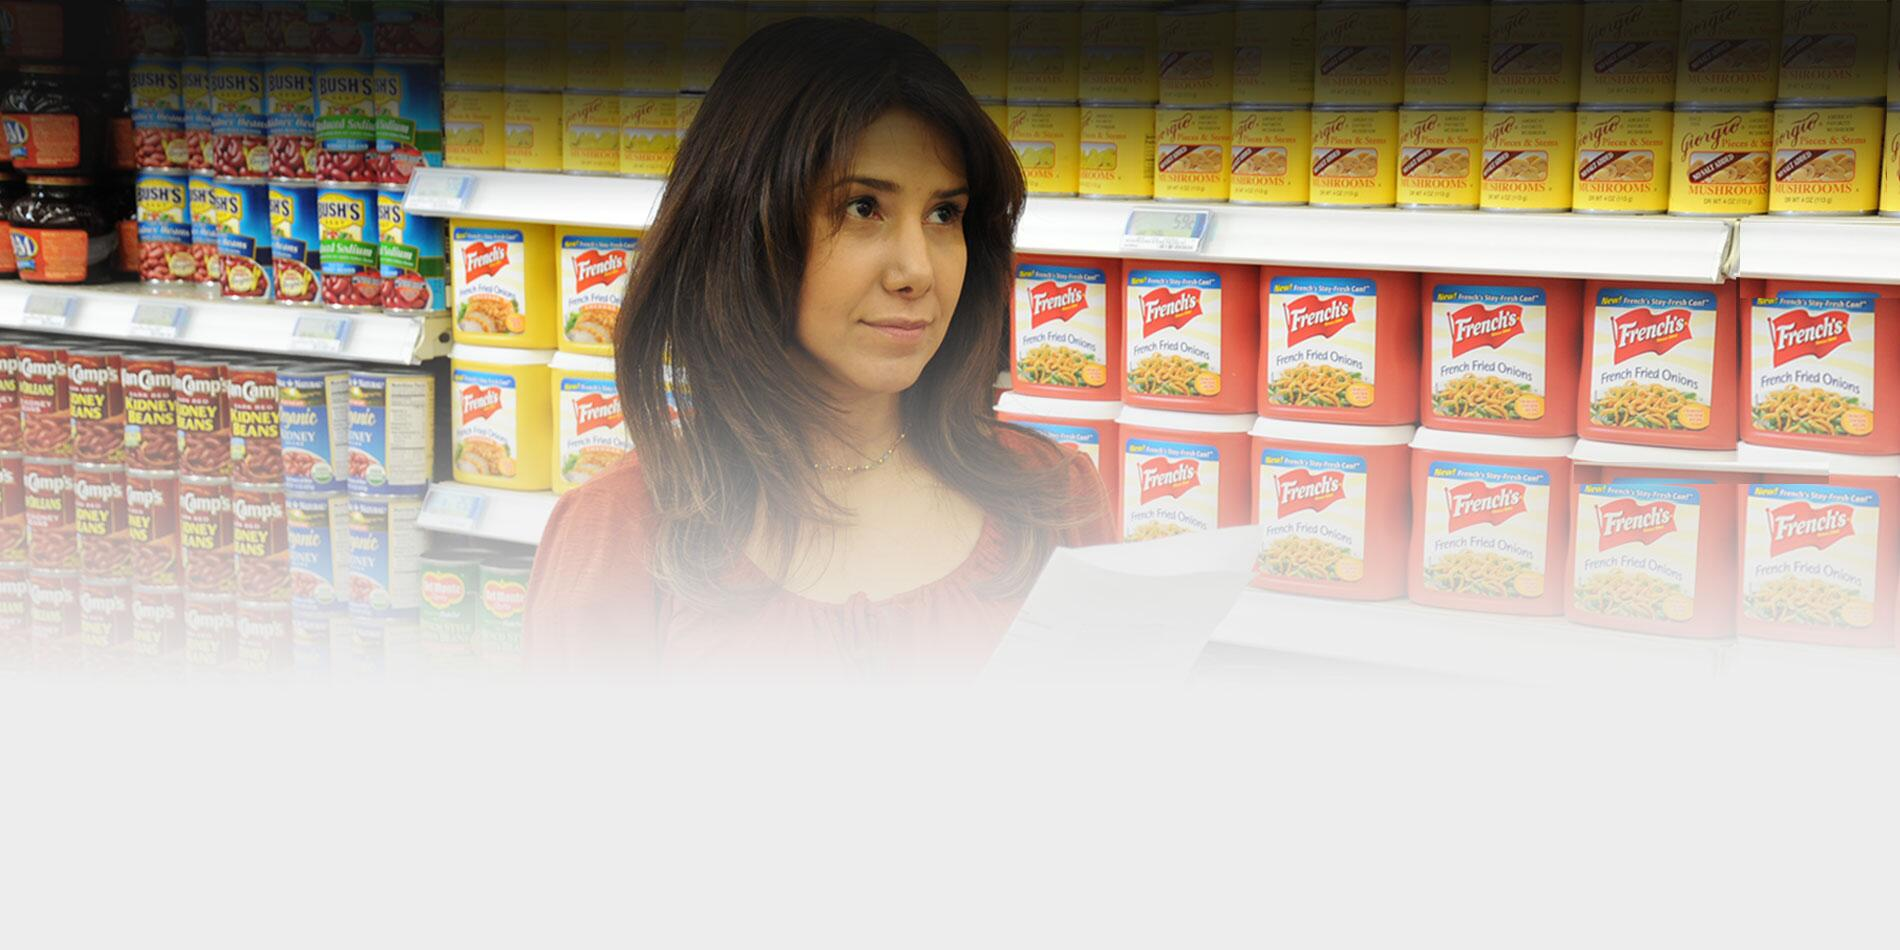 A picture of a woman shopping for food from a list in the grocery store.